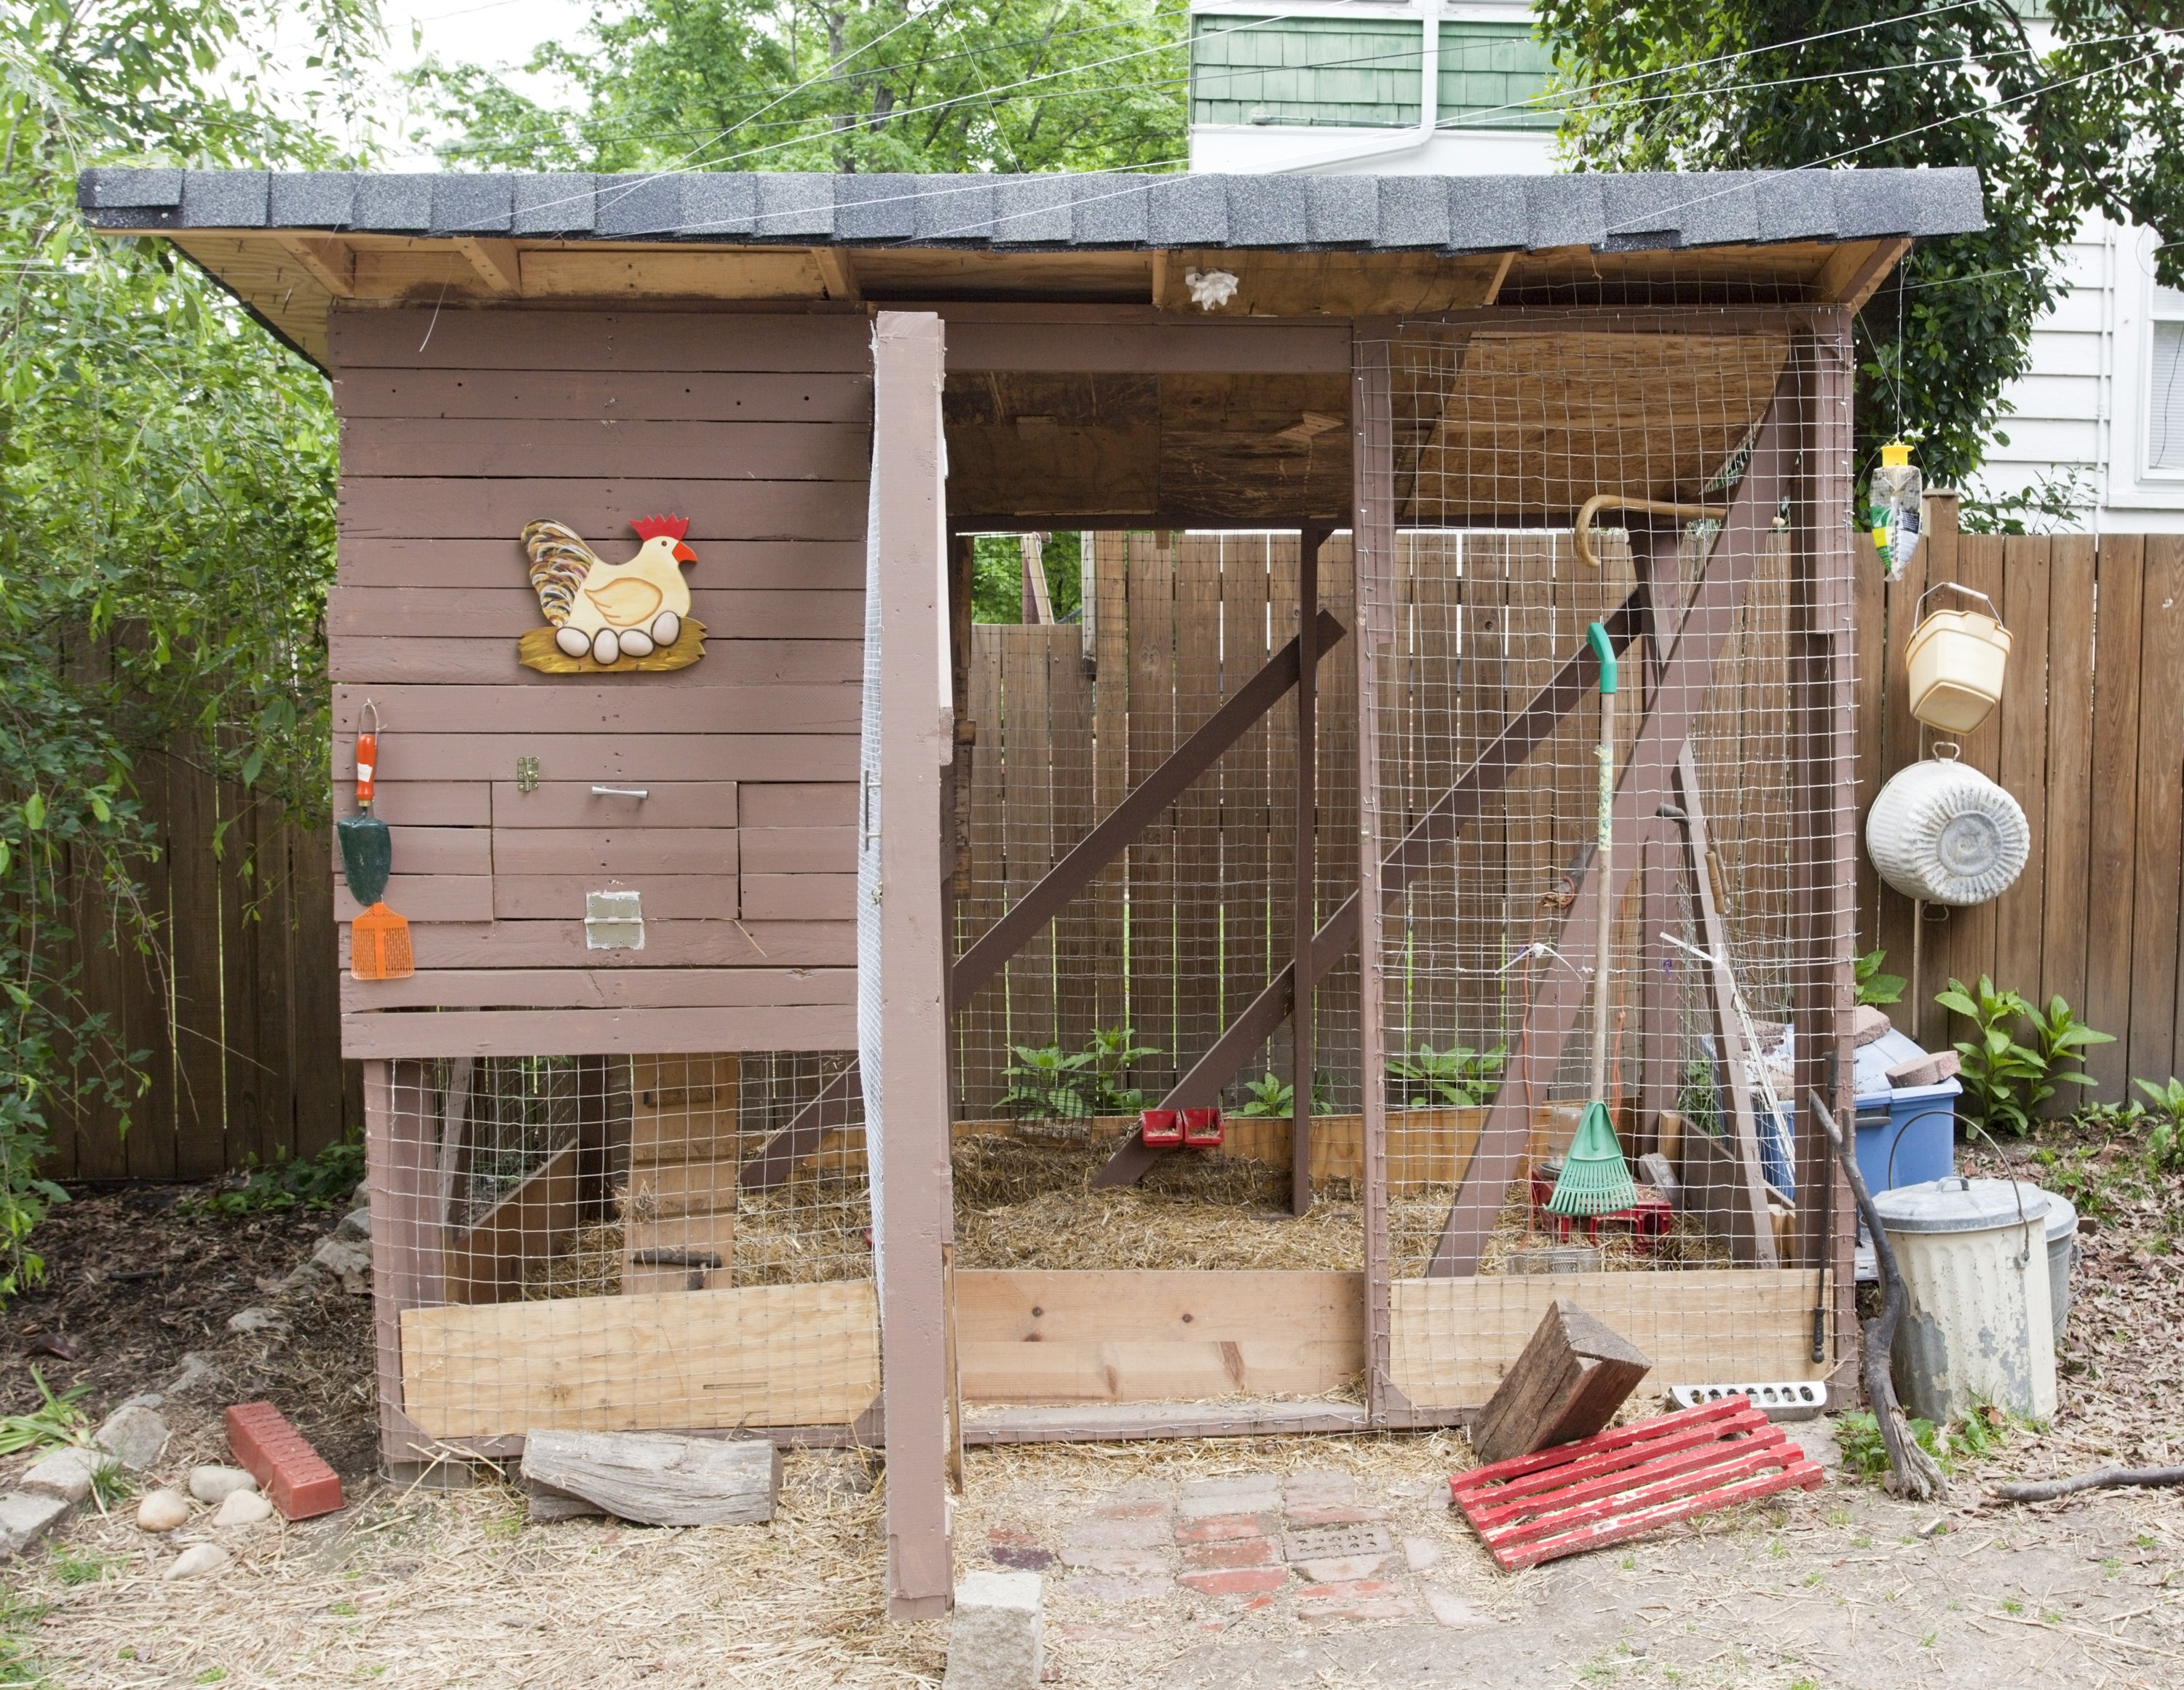 Urban backyard chicken coop. Horizontal.